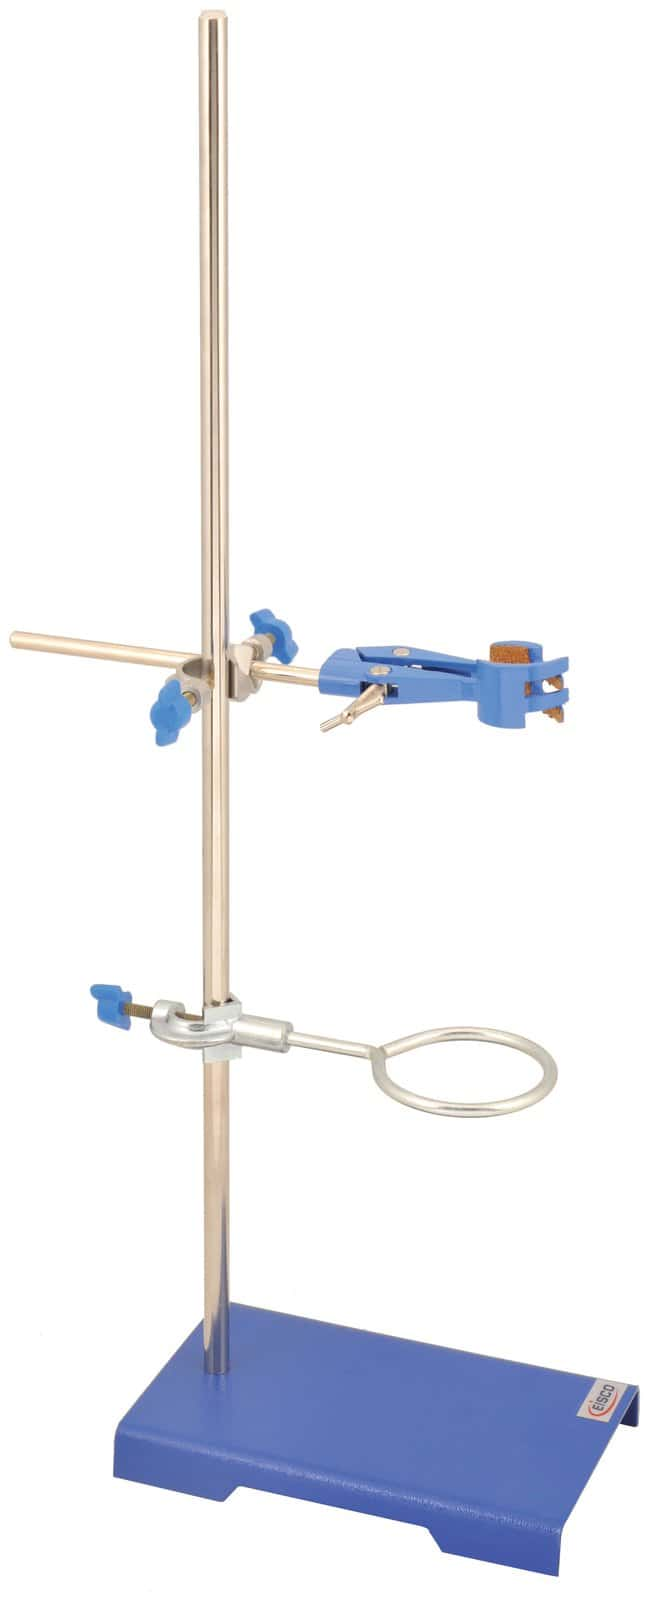 clamp and clamp stand essay